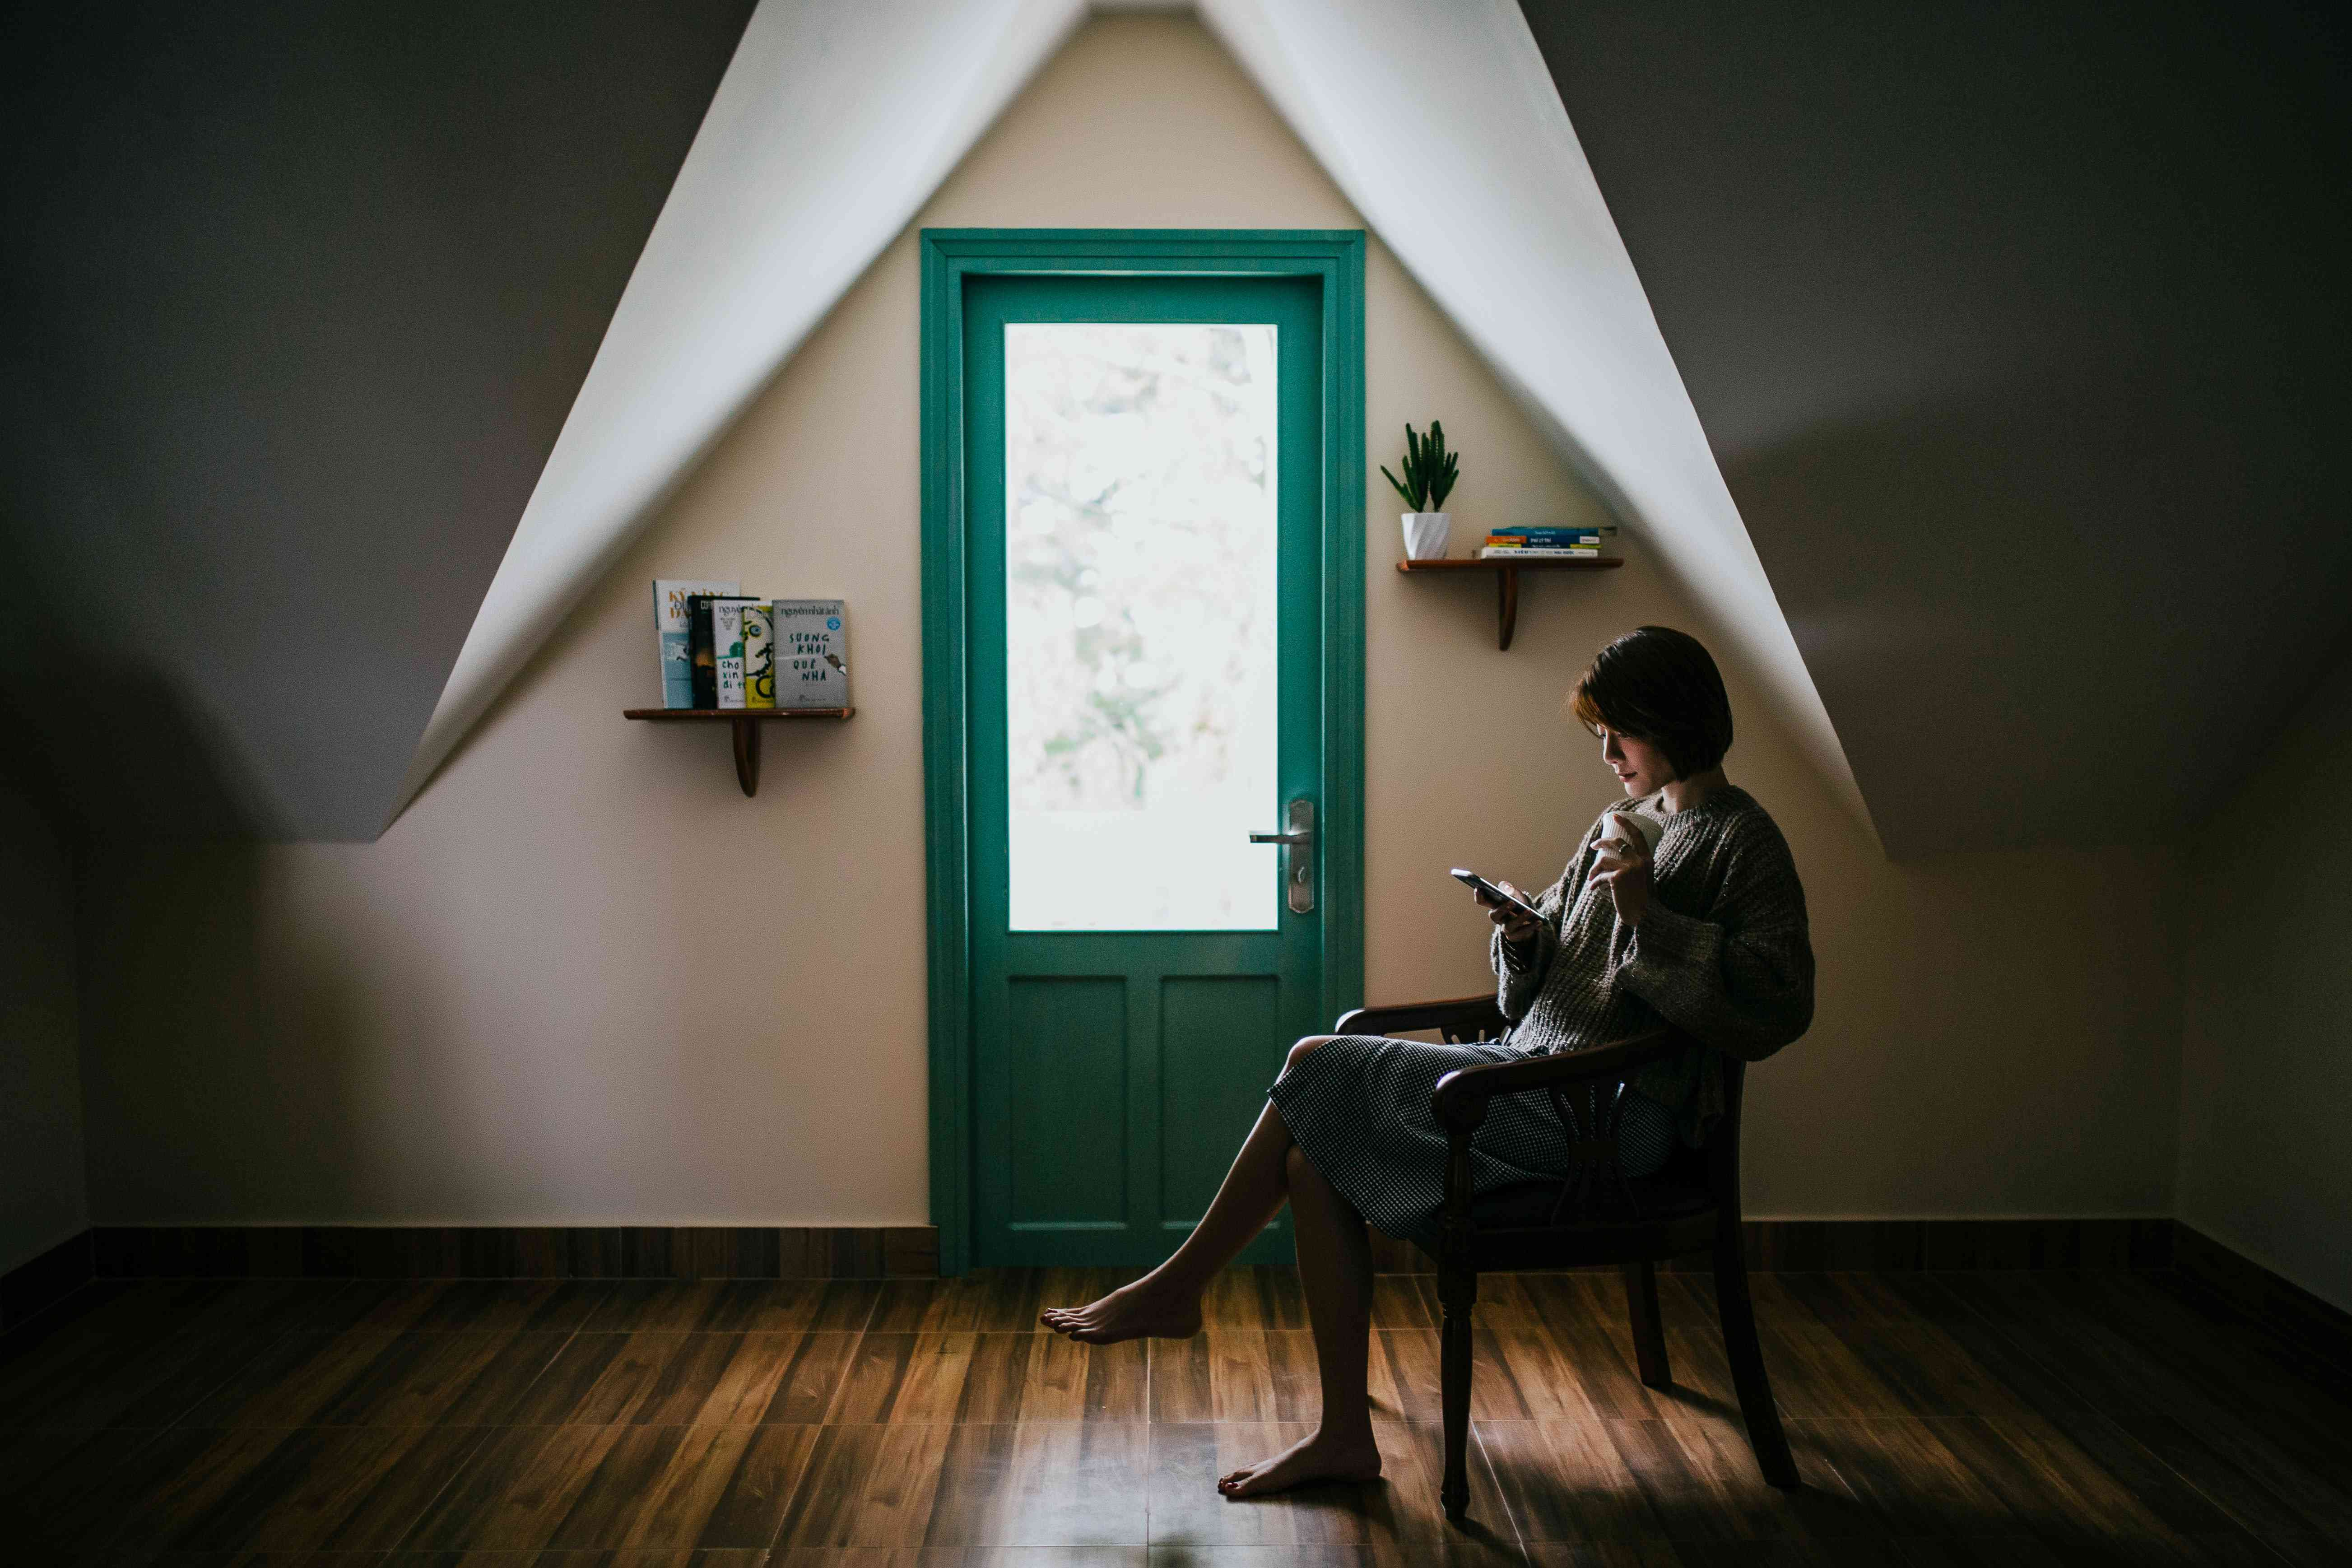 Someone sitting on a chair in an empty room, reading on an e-book reader.